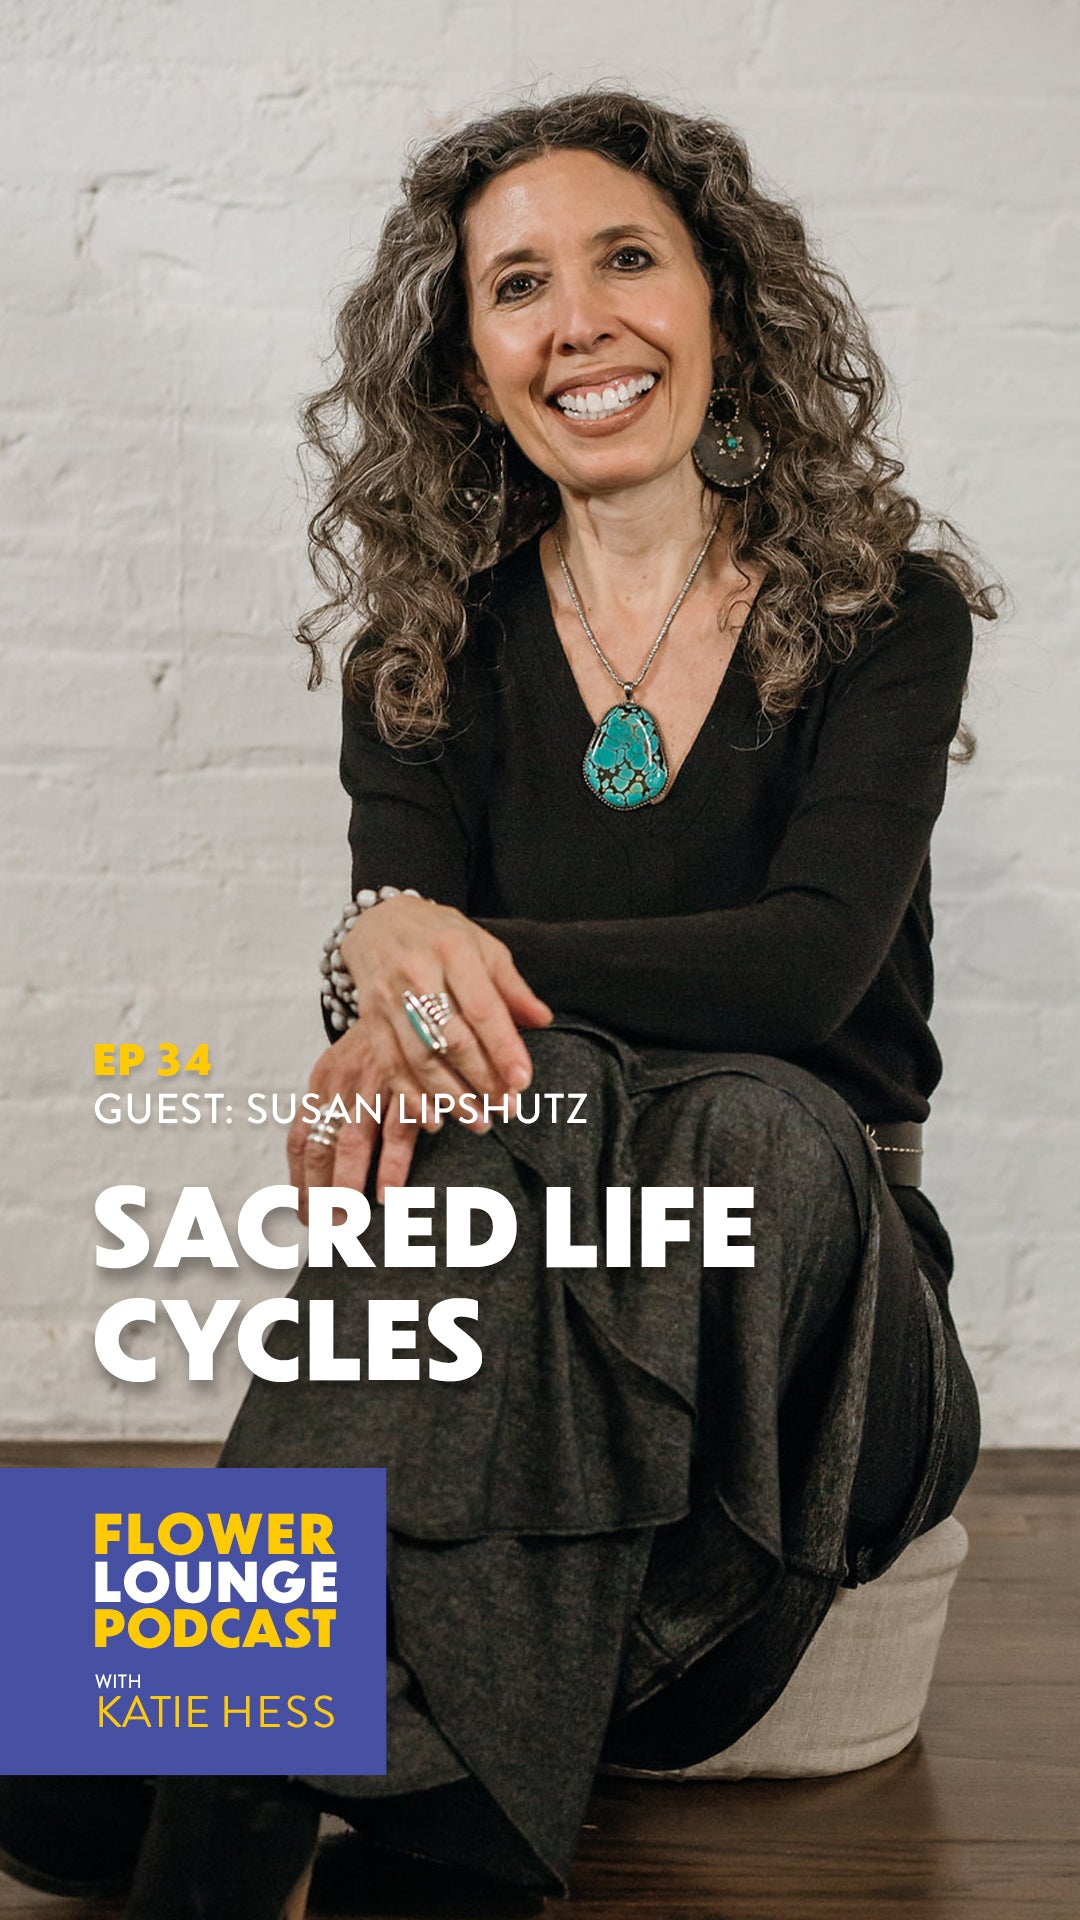 Susan lipshutz menopause sacred life cycles flowerlounge podcast with katie hess